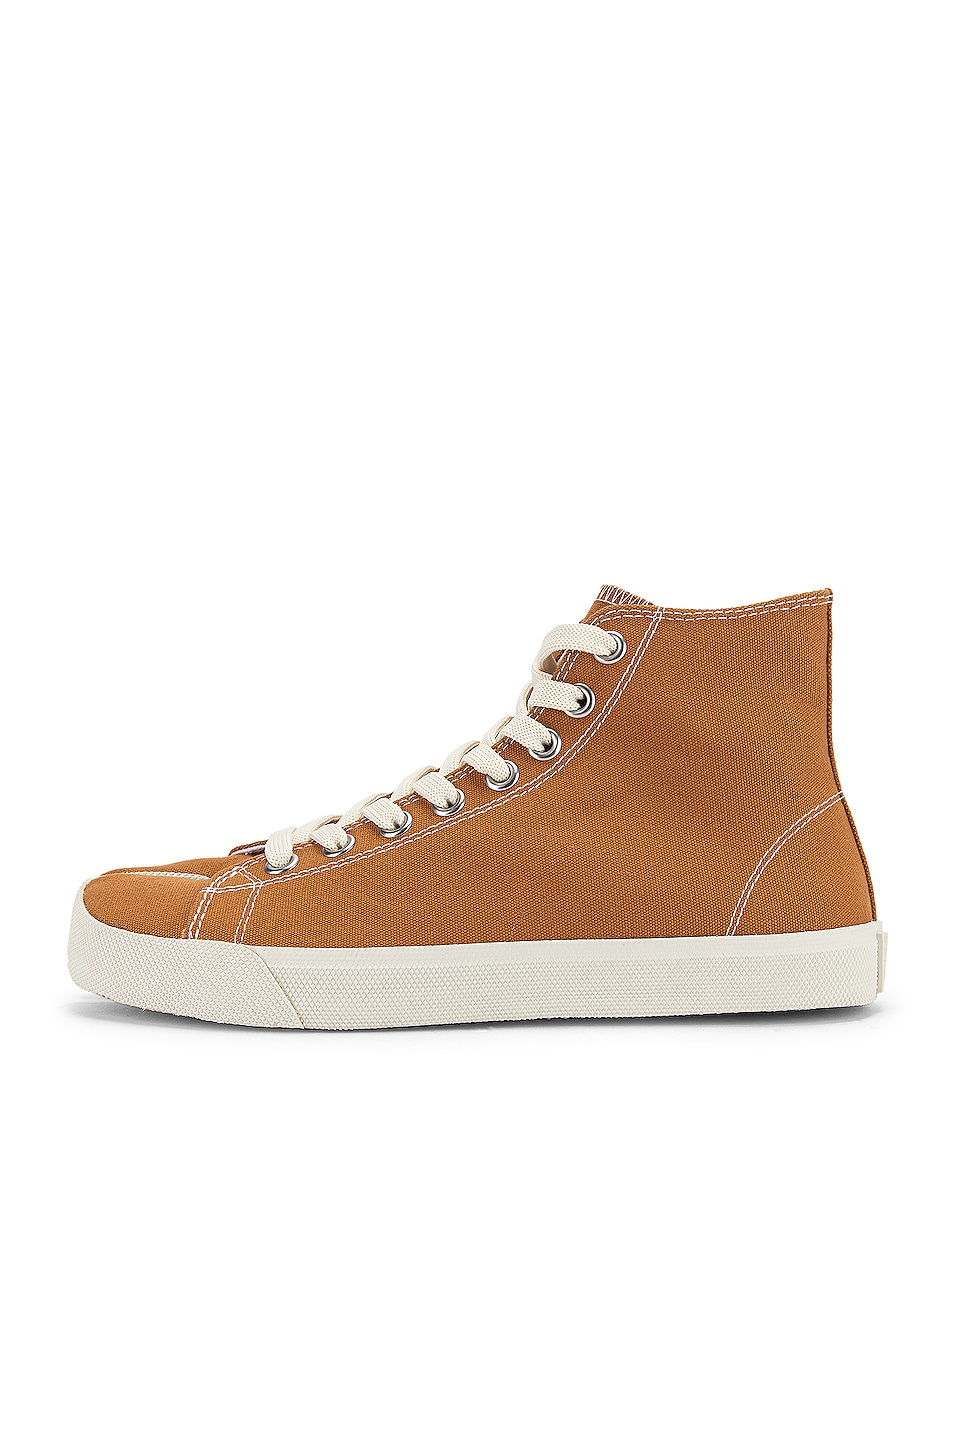 Image 8 of Maison Margiela Tabi High Top Canvas Sneakers in Nude